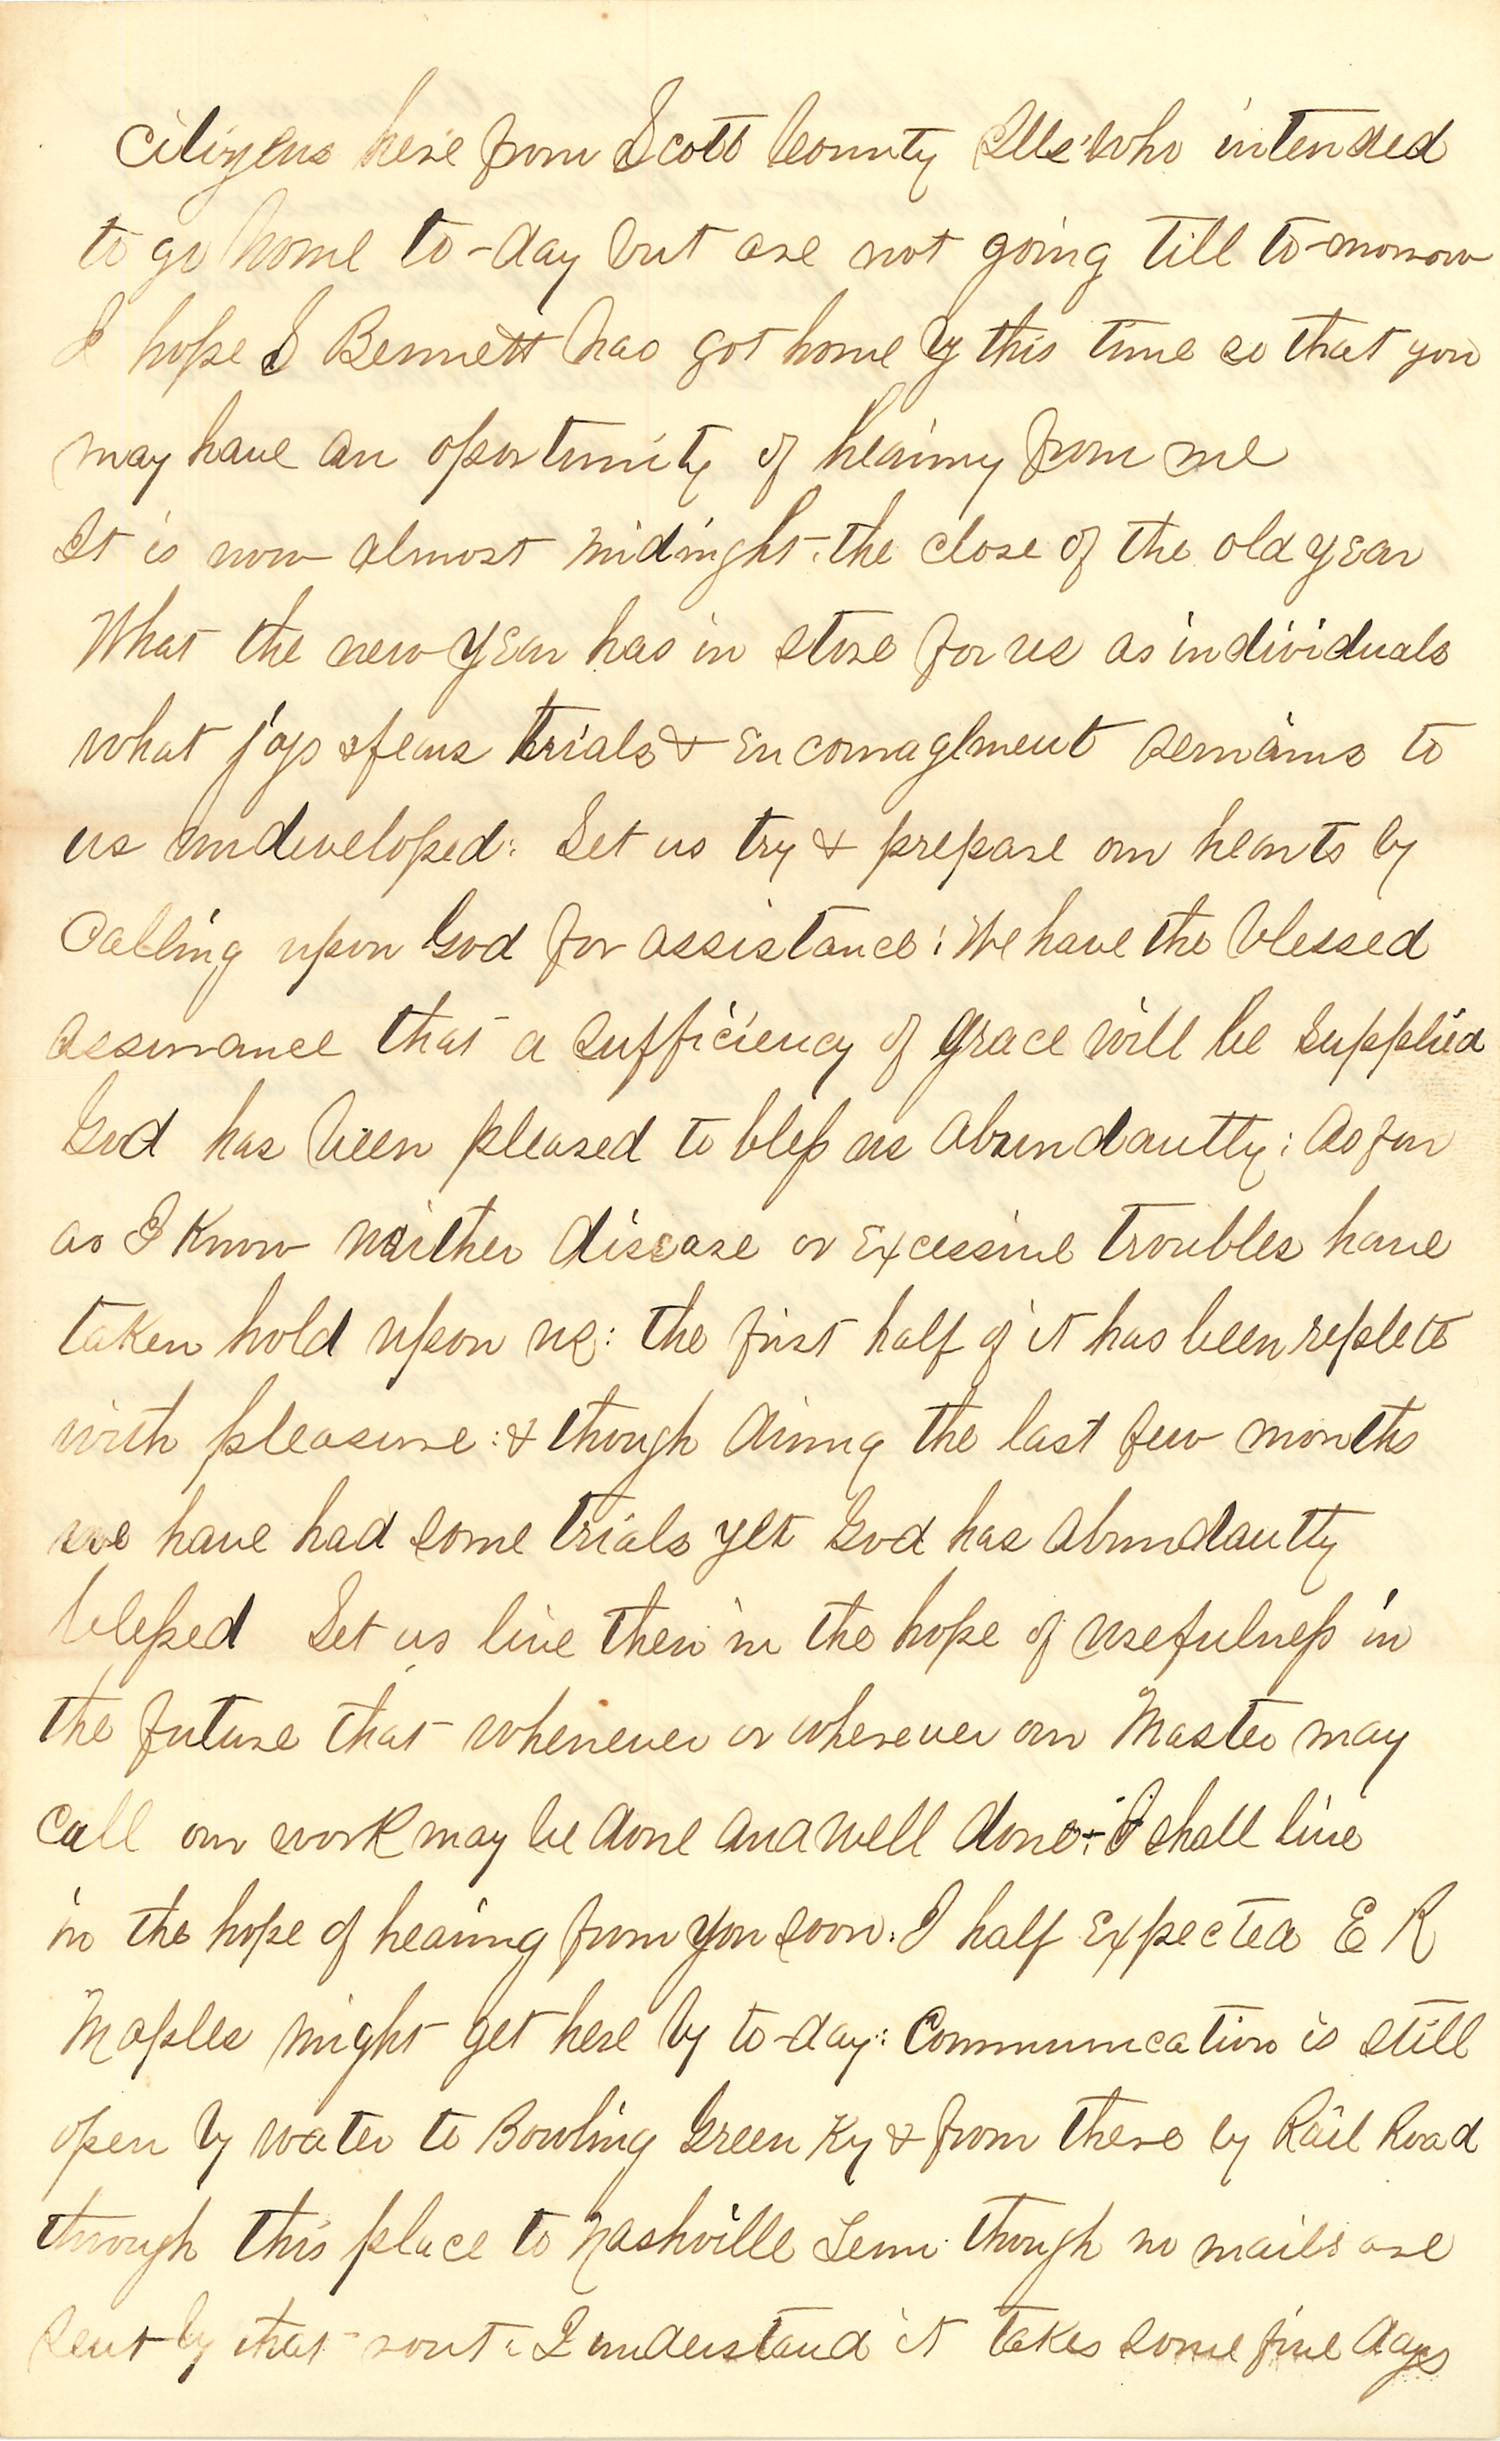 Joseph Culver Letter, December 31, 1862, Page 3